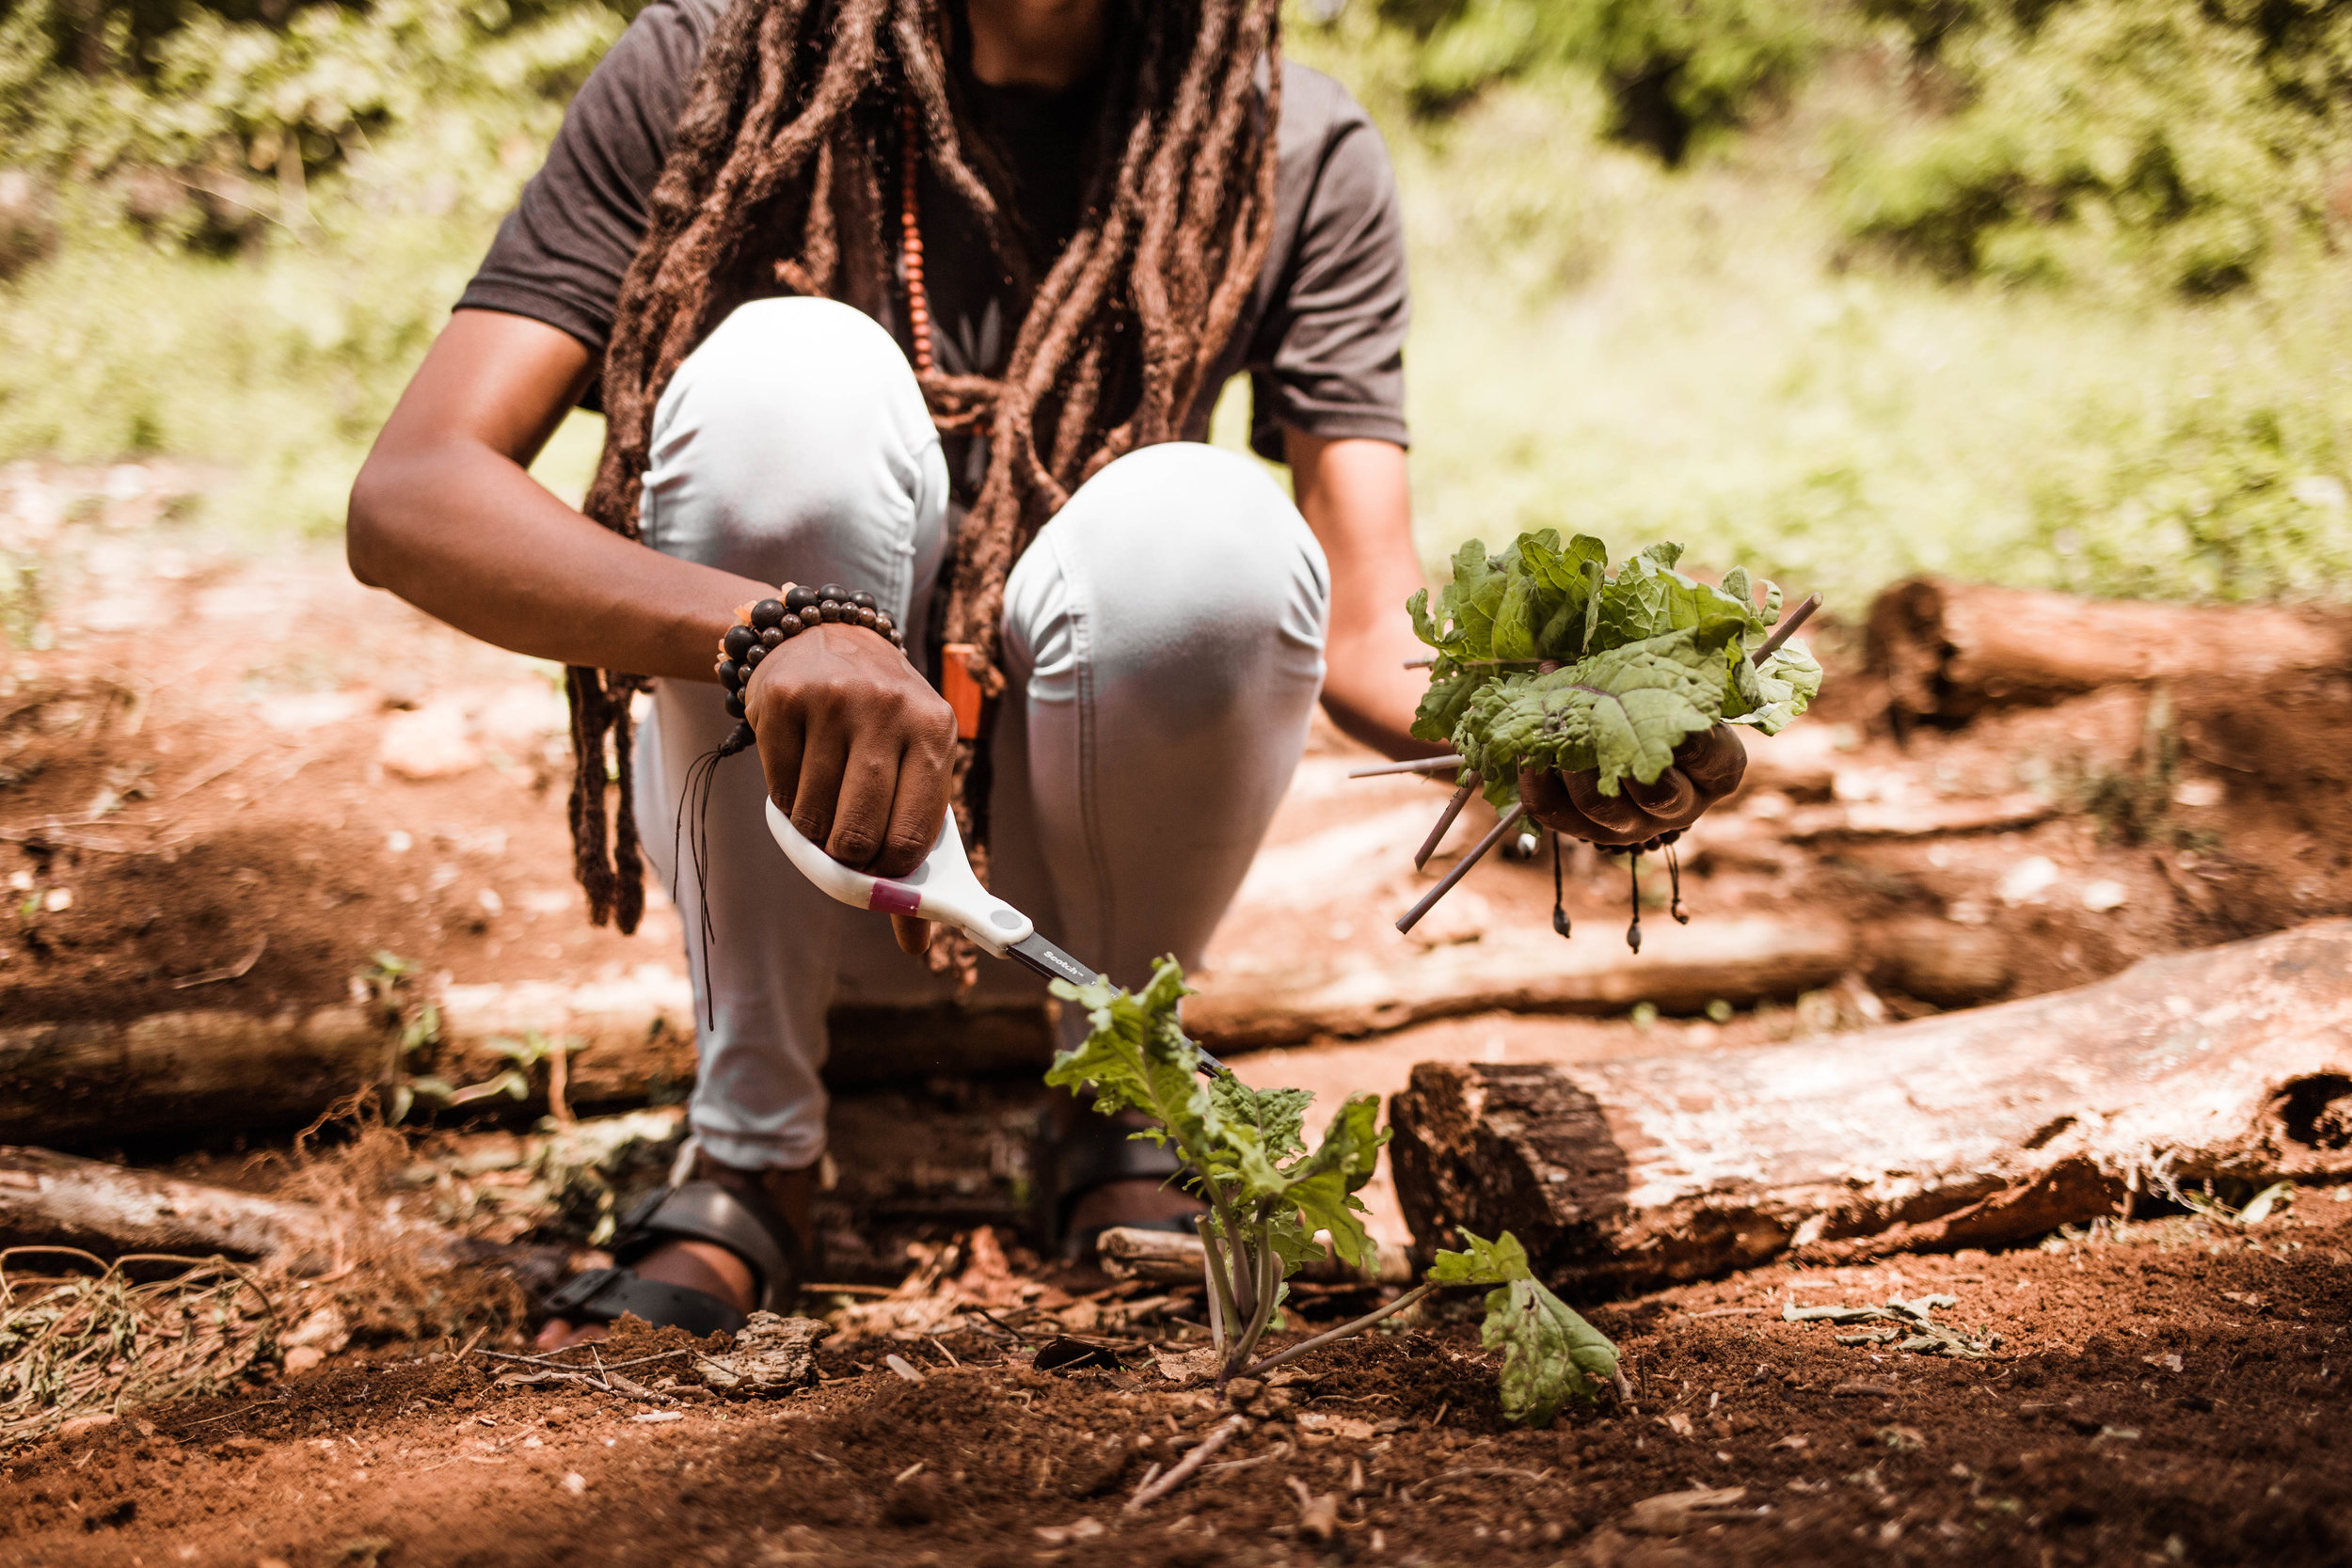 Grow - Experience the preservation and growth of our natural being by engaging with nature in its most untouched form. Tour the ecological garden and kitchen